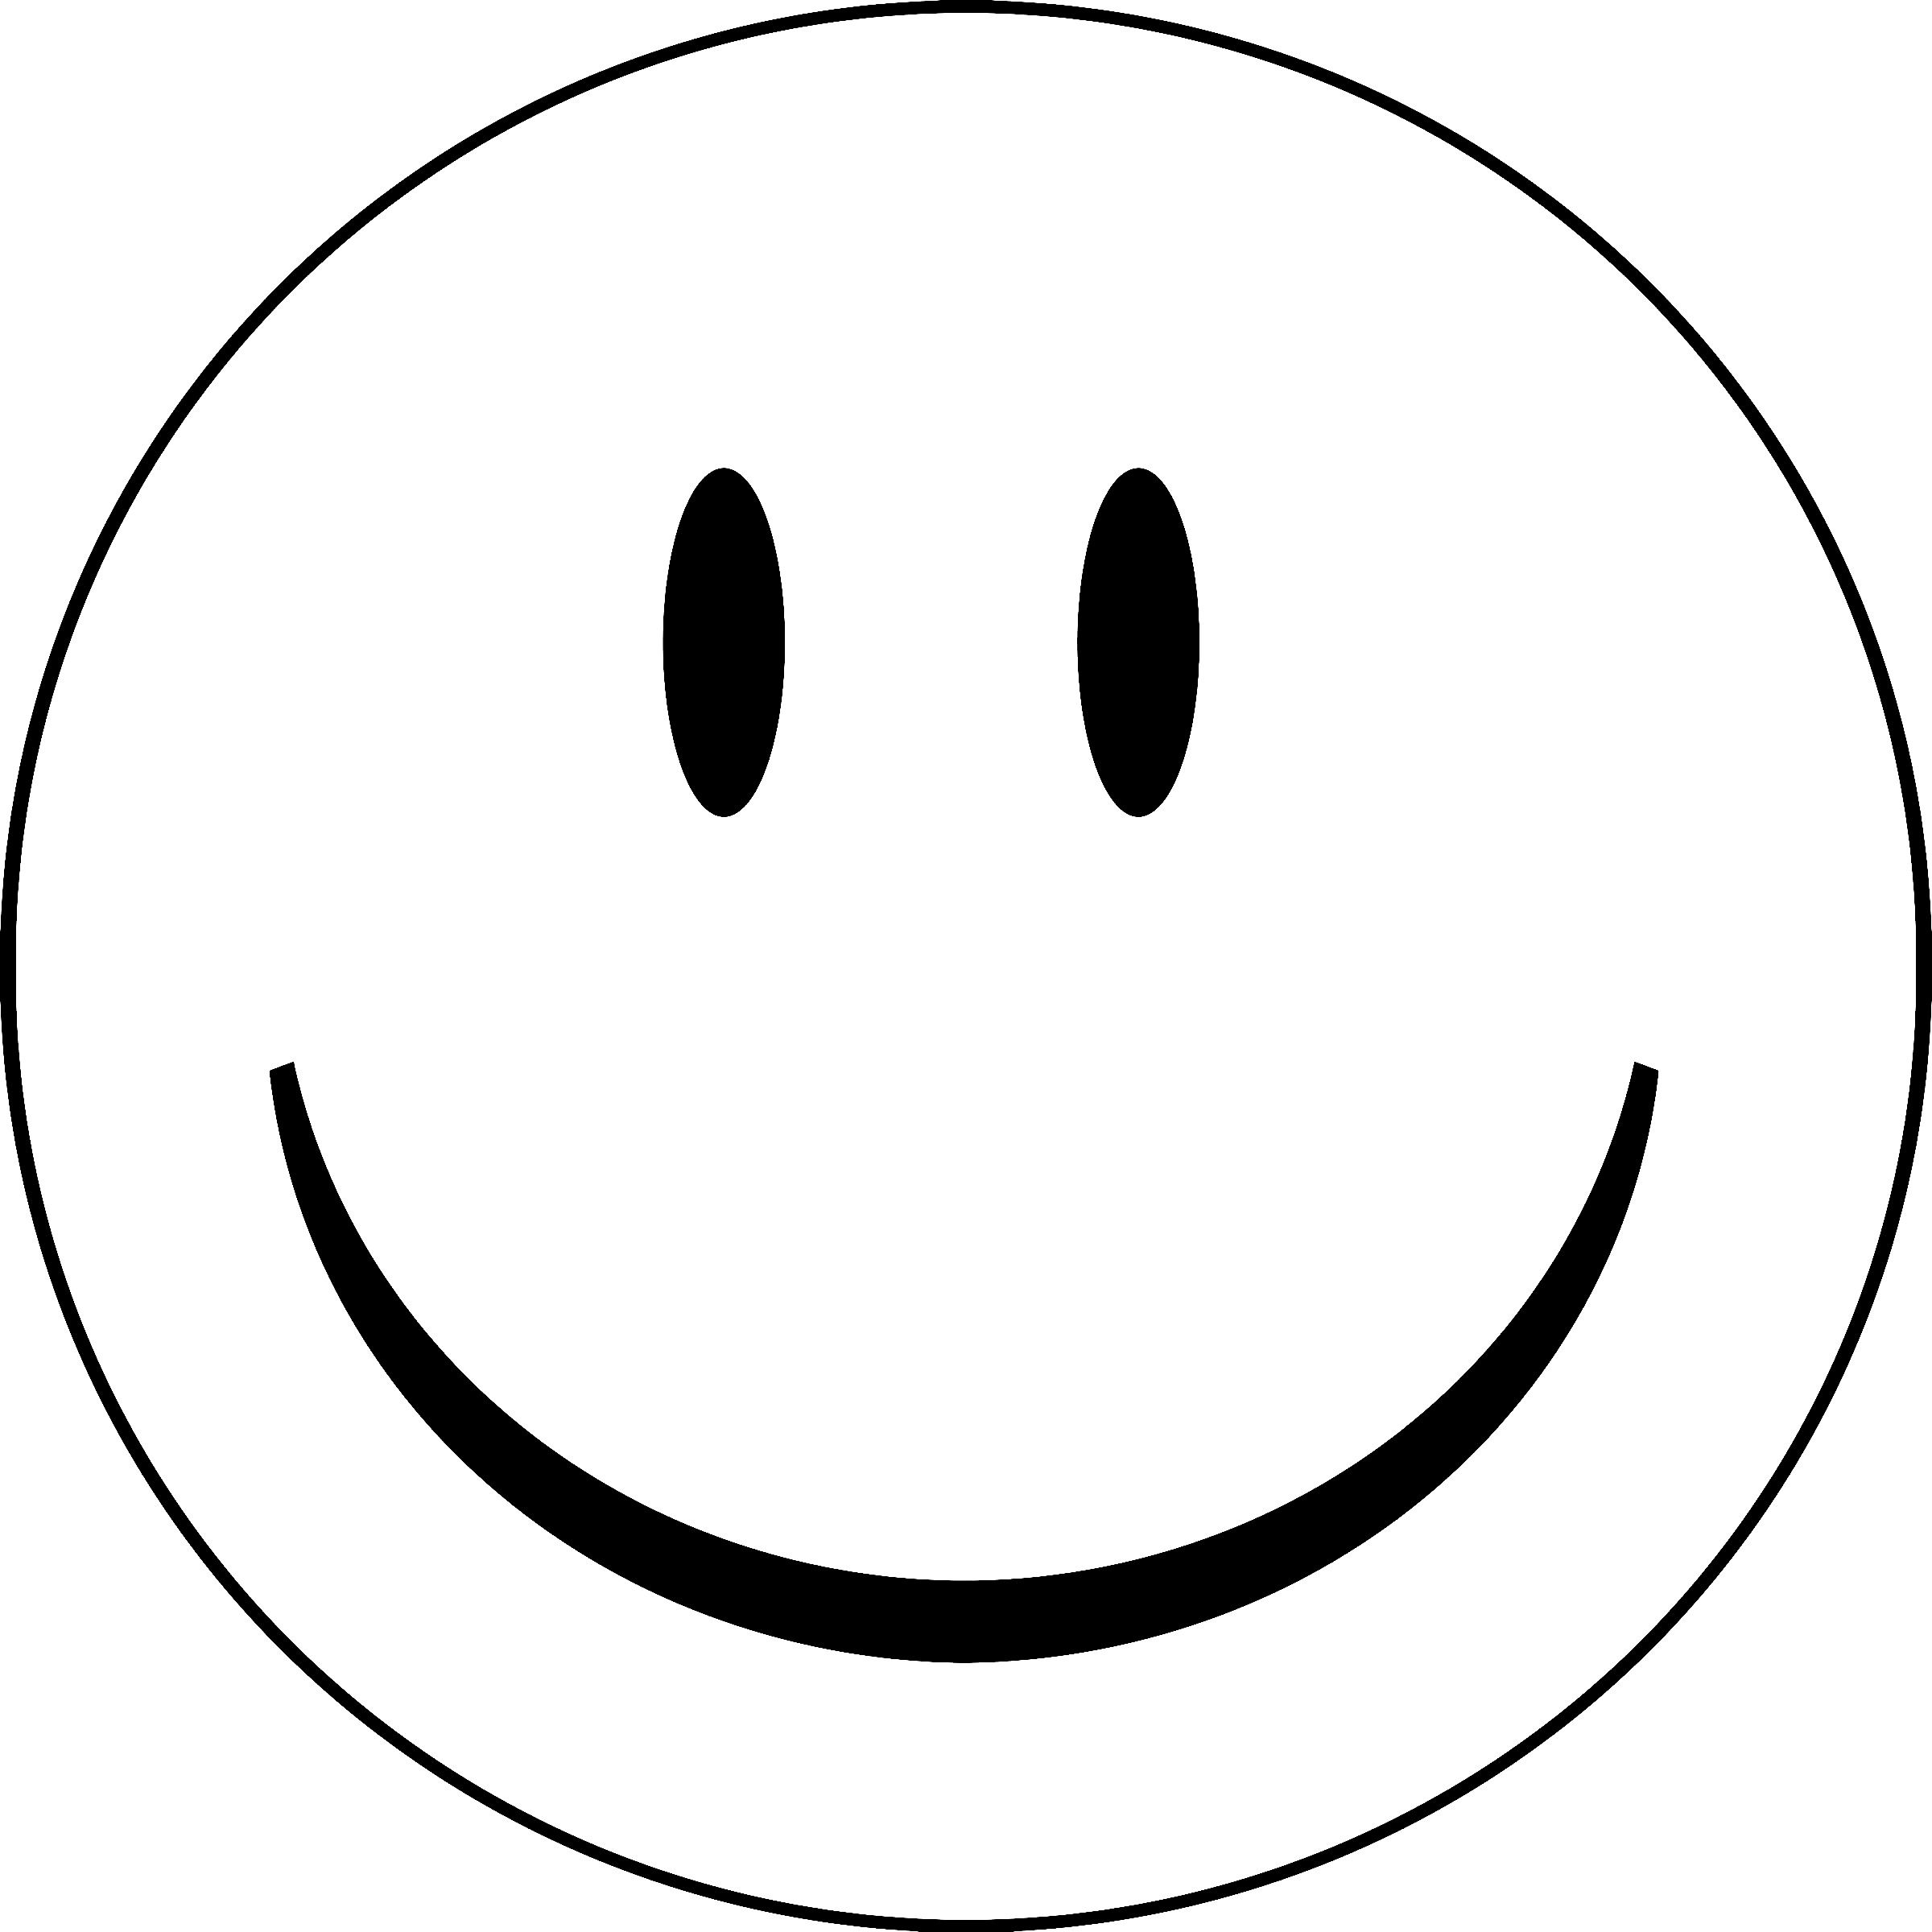 Blank Smiley Face Coloring Pages Emoji Coloring Pages Coloring Pages Printable Coloring Pages